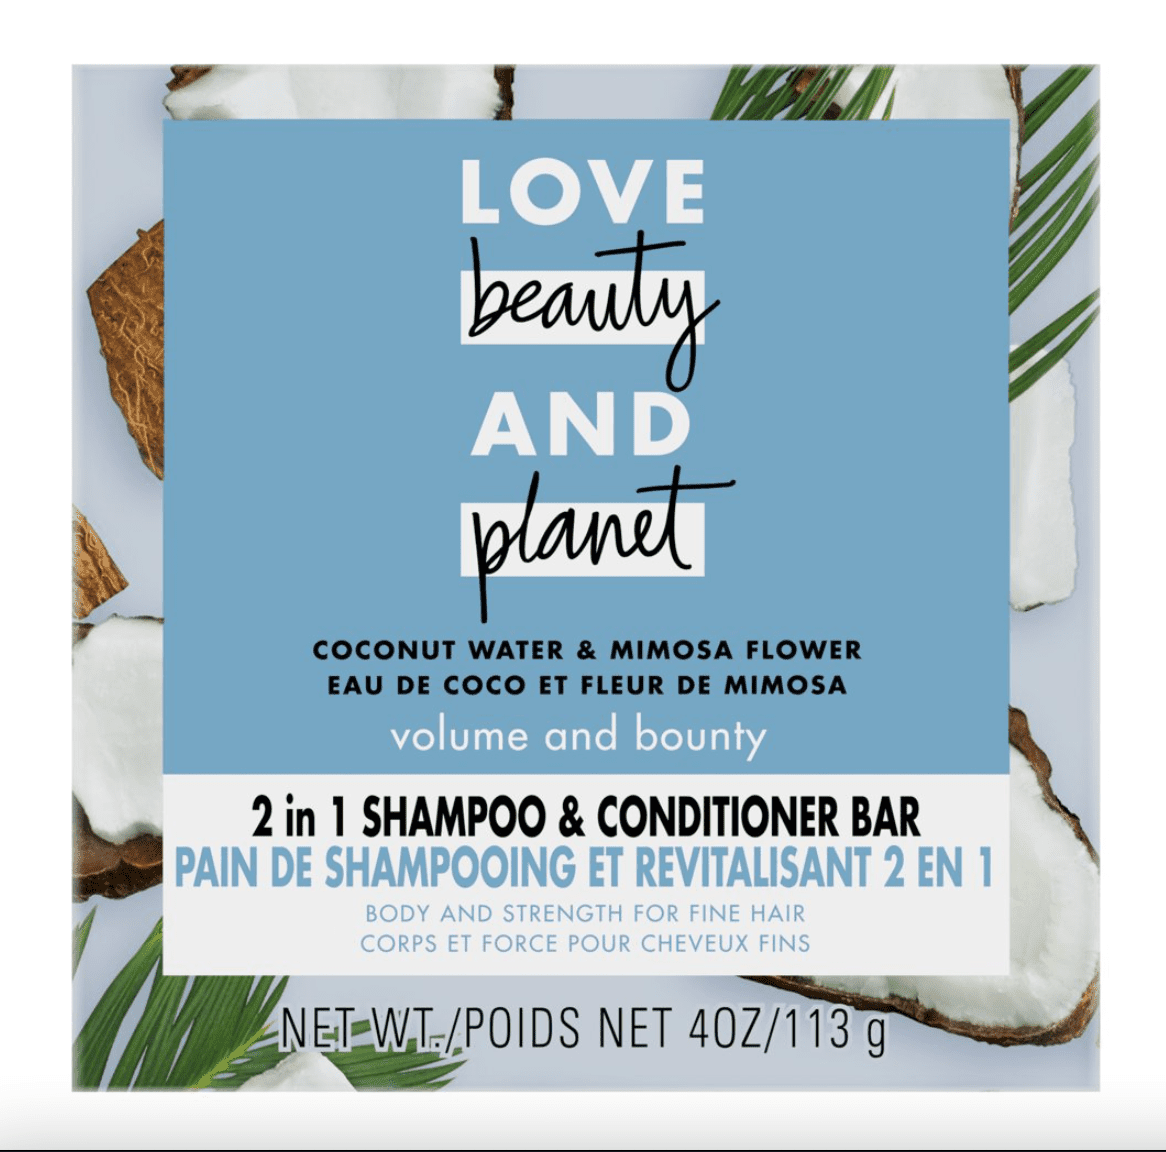 2 in 1 Coconut Water & Mimosa Flower Shampoo and Conditioner Bar